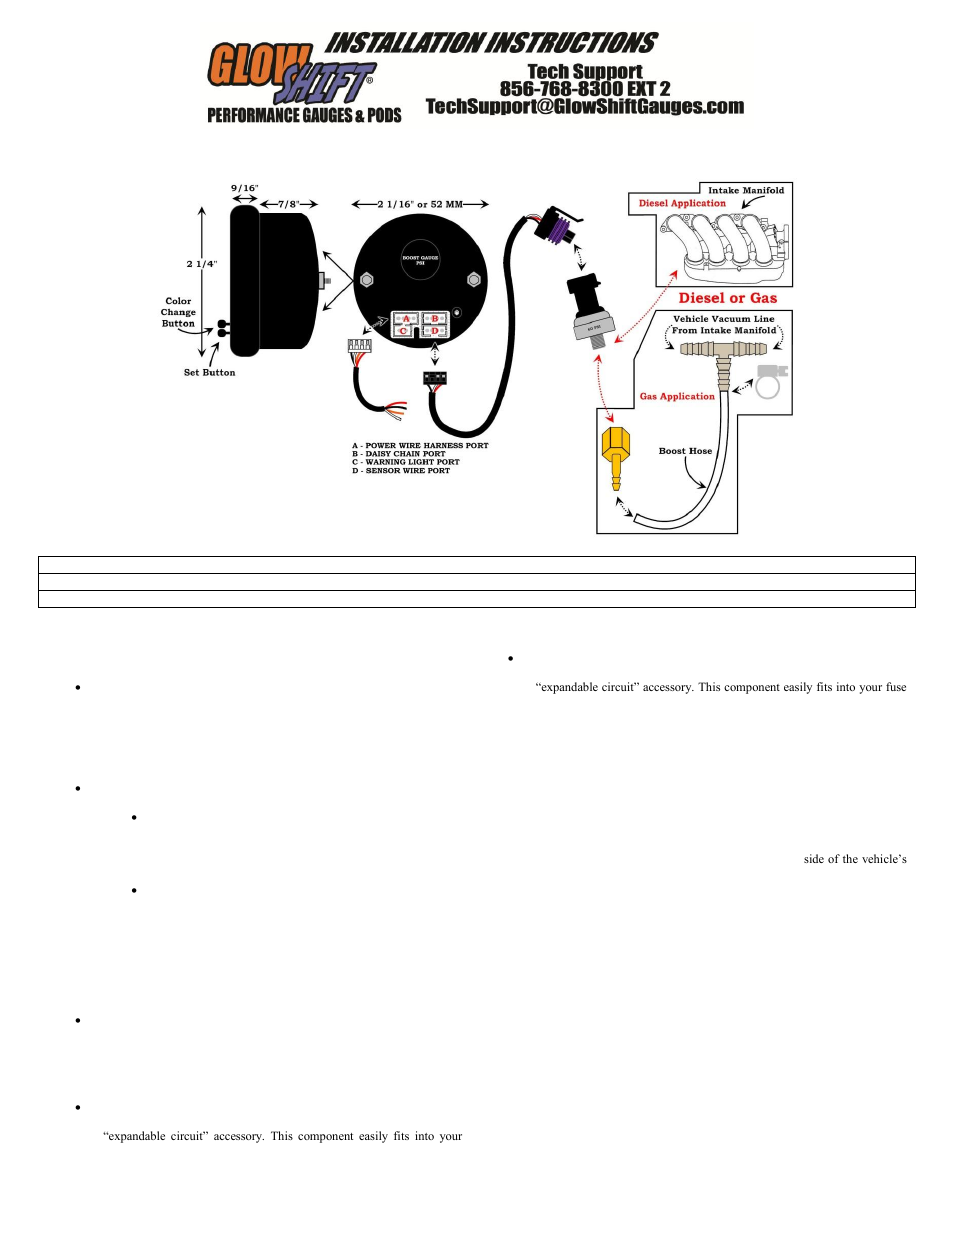 Wiring Diagram For Glowshift Boost Gauge - 2004 Chevy Fuse Box Diagram -  furnaces.yenpancane.jeanjaures37.fr | Wrx Glowshift Wiring Diagram |  | Wiring Diagram Resource